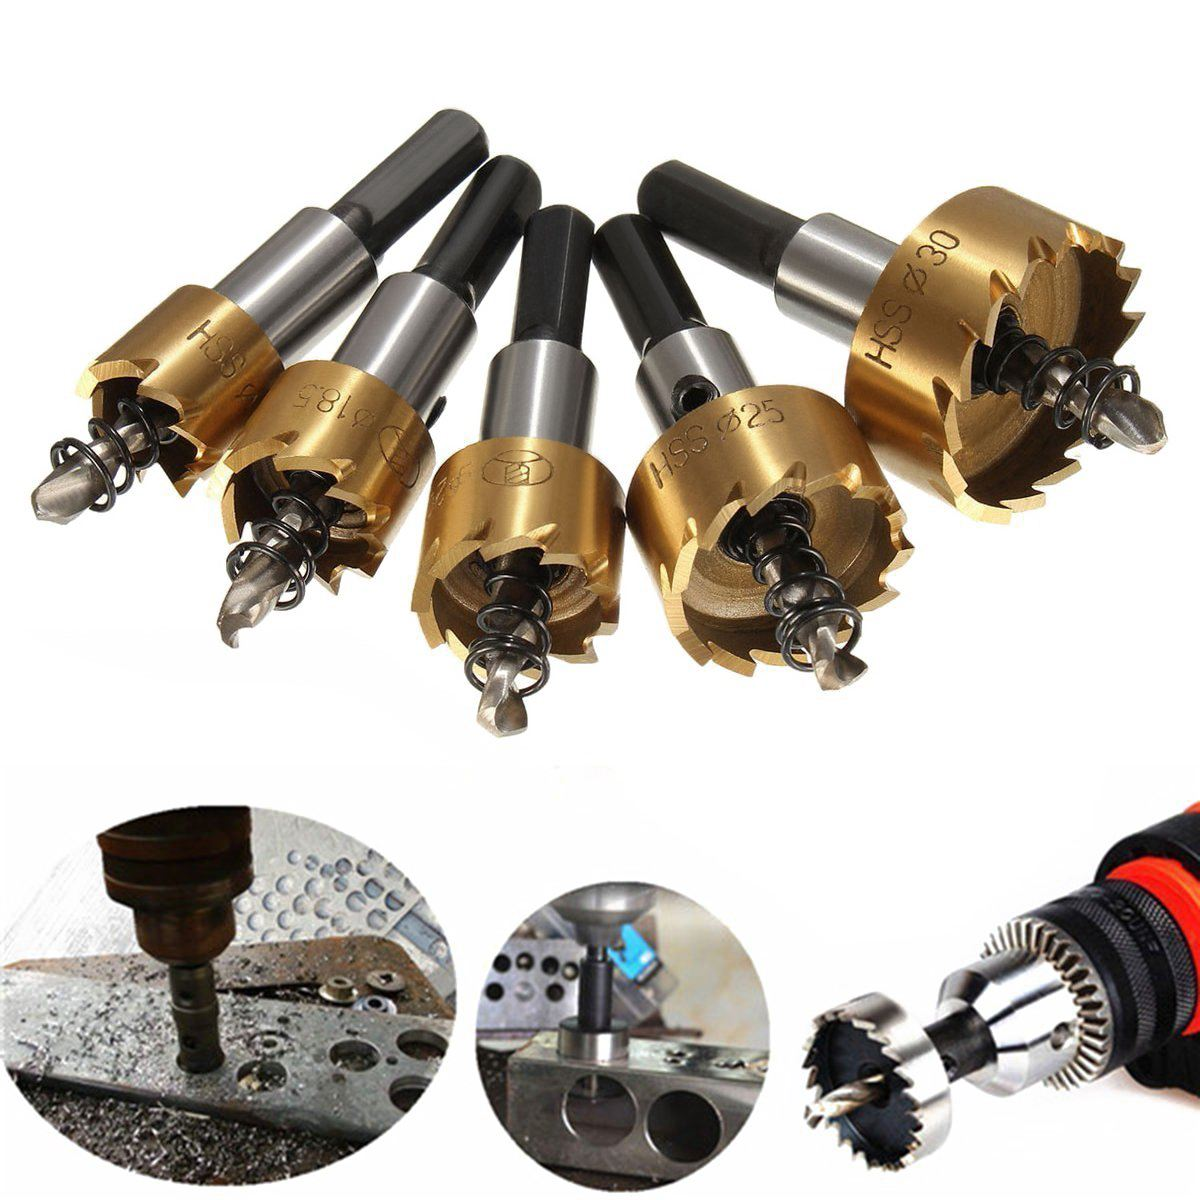 5pcs 16-30mm High Speed Steel Drill Set Meche Cutter For Drilling Cylindrical Saw - Gold